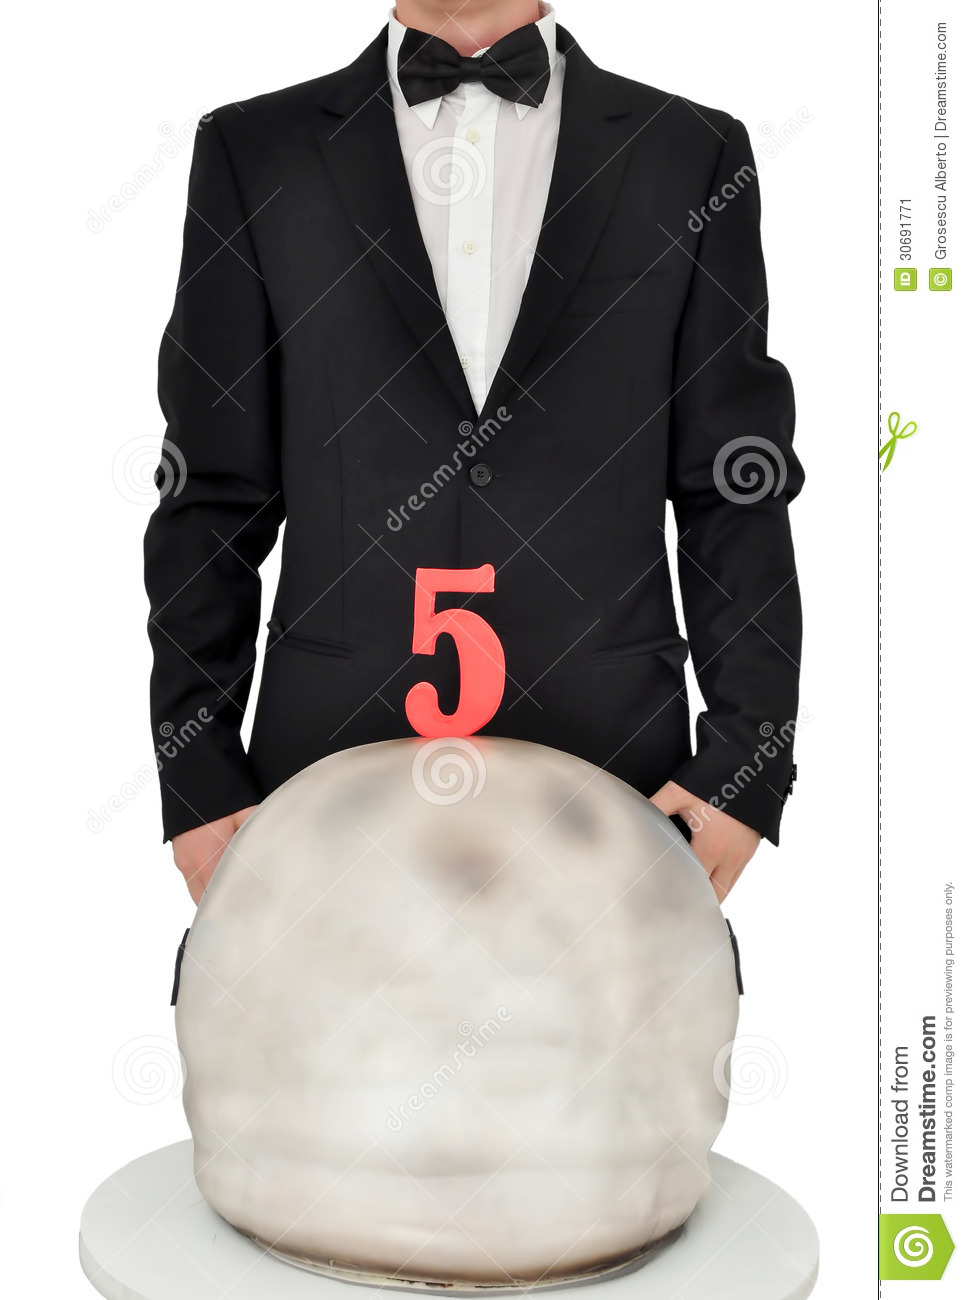 Birthday Candle Hat Man In Tuxedo With A Birthday Cake Stock Image - Image